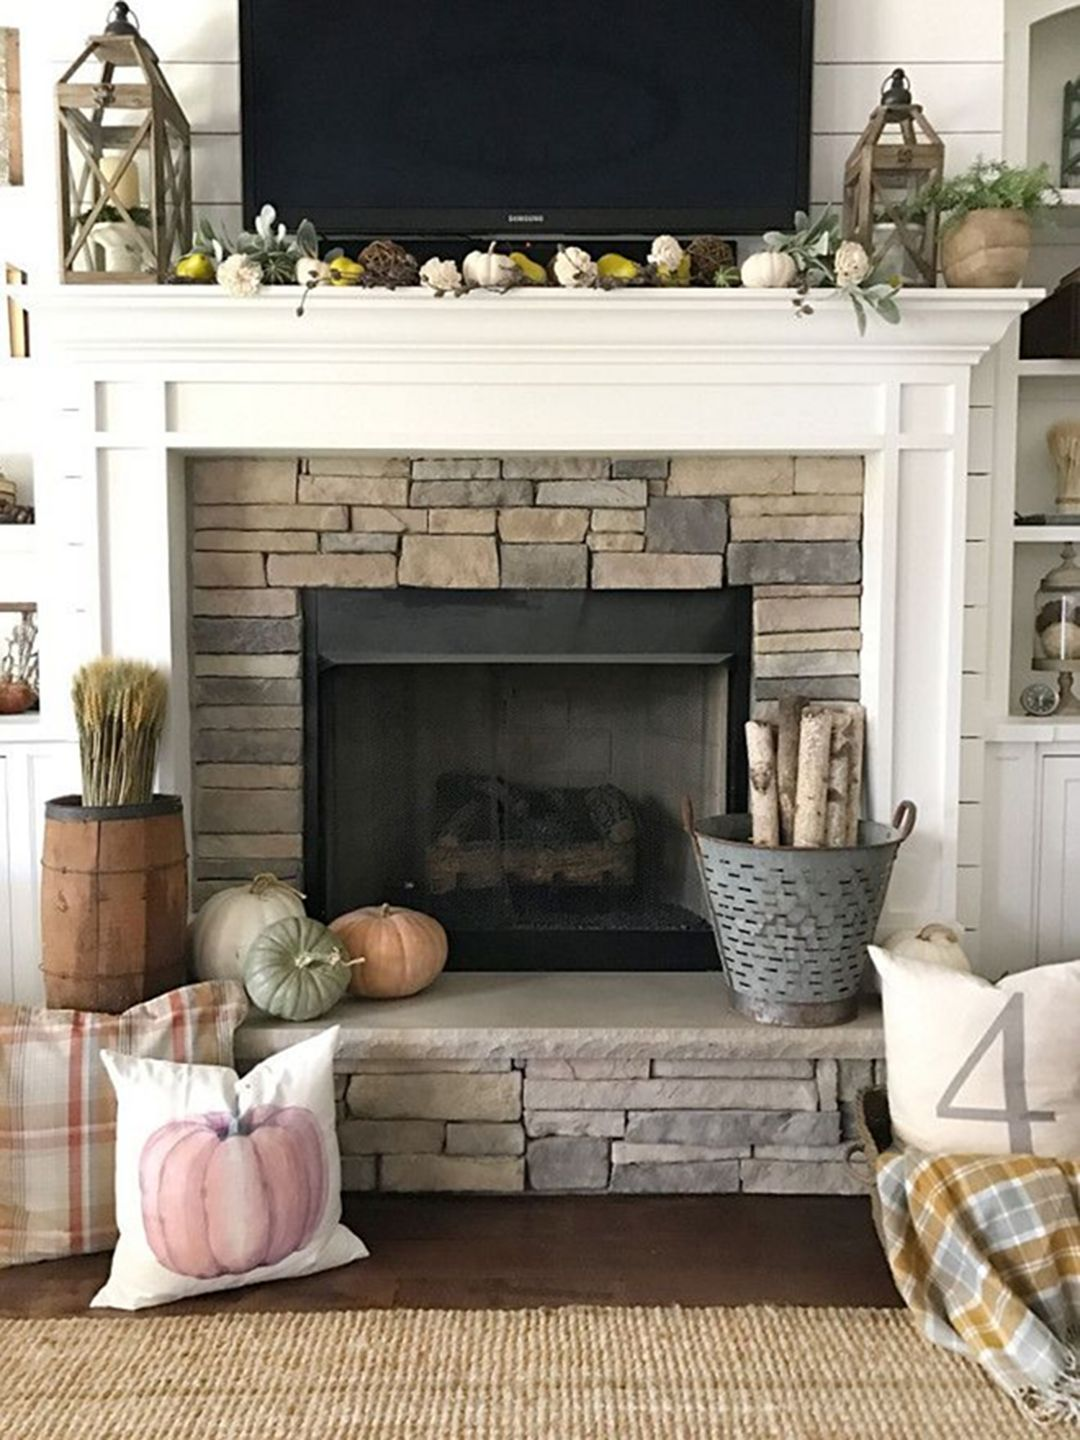 10 Beautiful Farmhouse Fireplace Mantel Decorations That Will Make You More Comfort Decor It S Fireplace Mantel Decor Farmhouse Fireplace Gorgeous Fireplaces